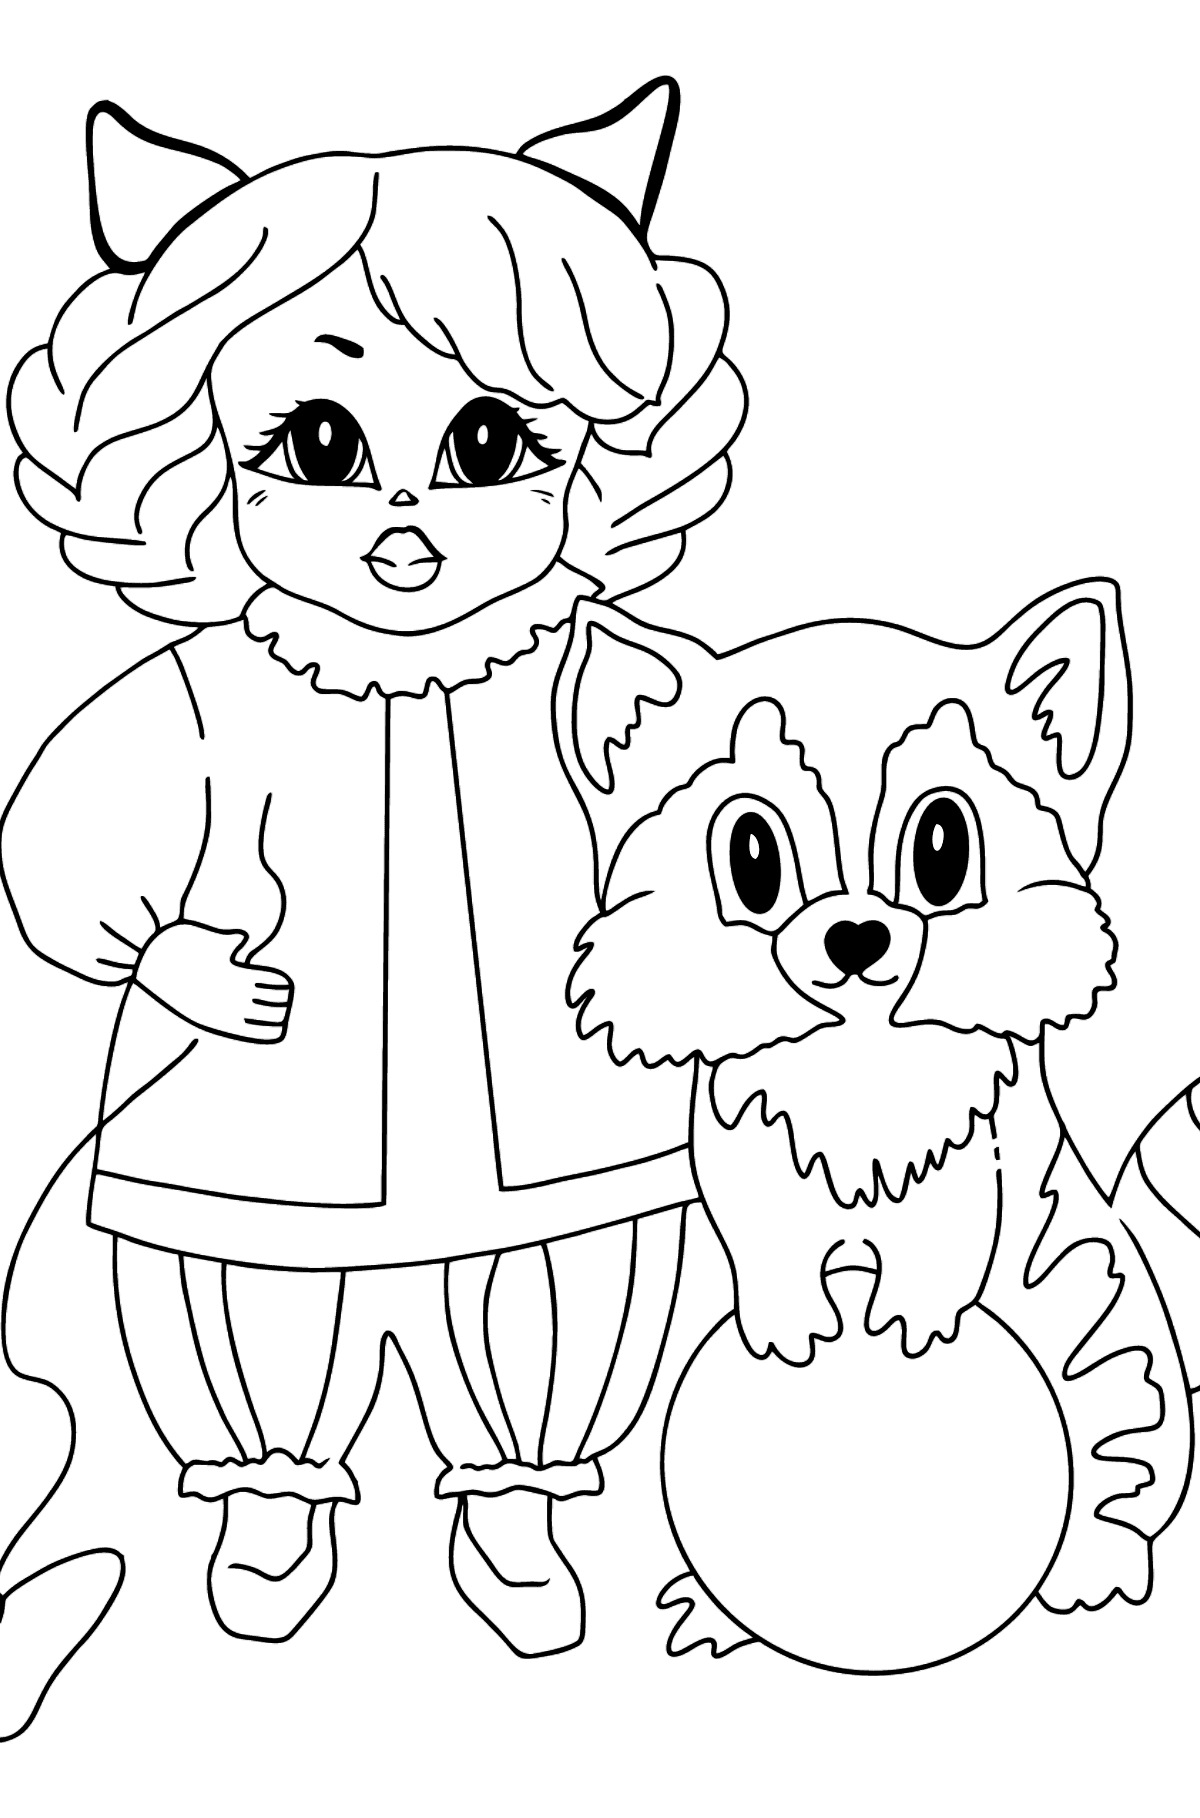 Coloring Page - A Princess with a Cat and a Racoon - Coloring Pages for Kids